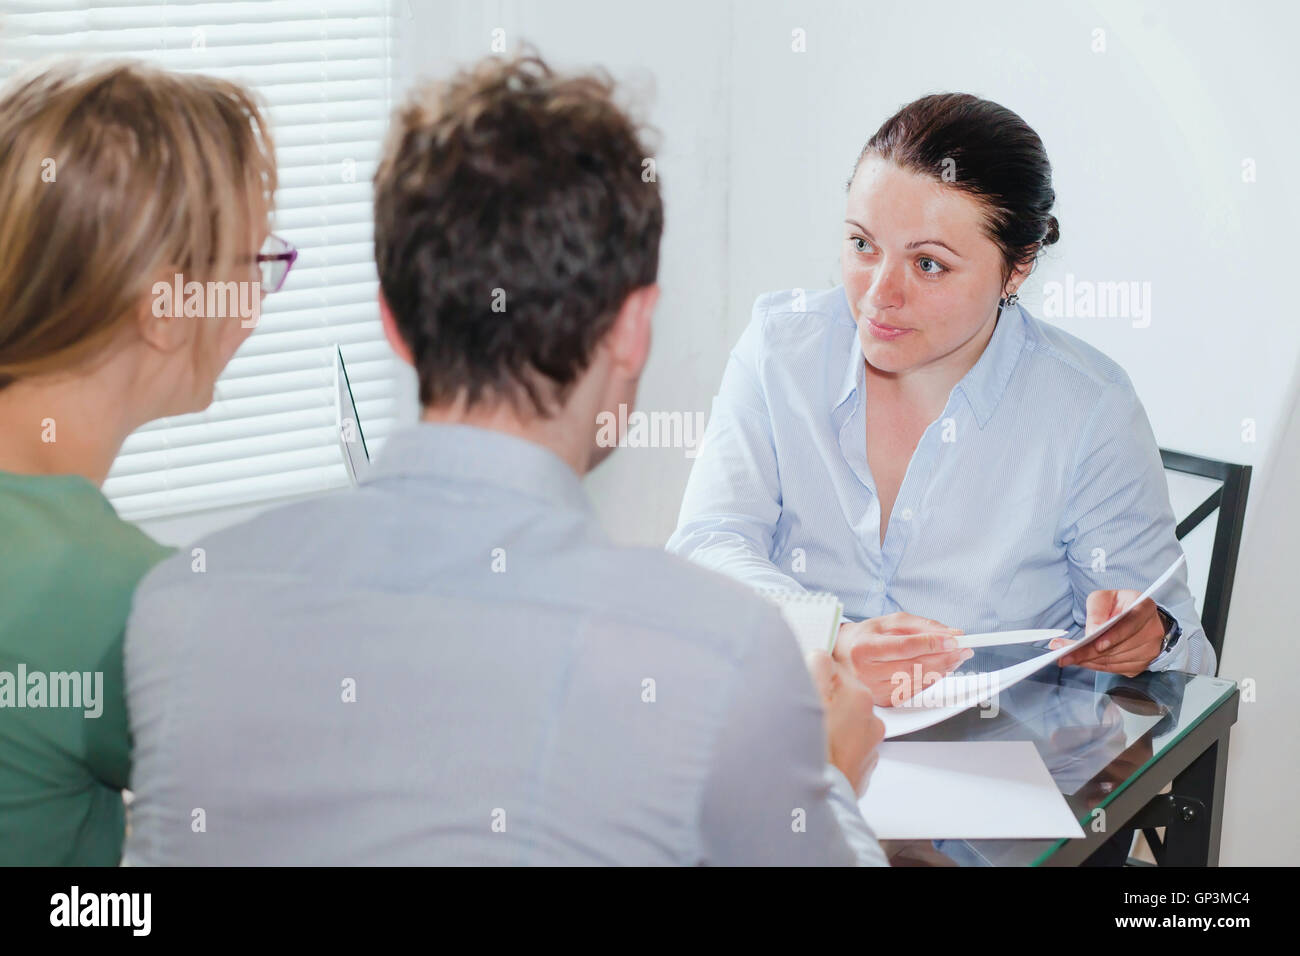 consultant or real estate agent working with couple of customers in the office - Stock Image